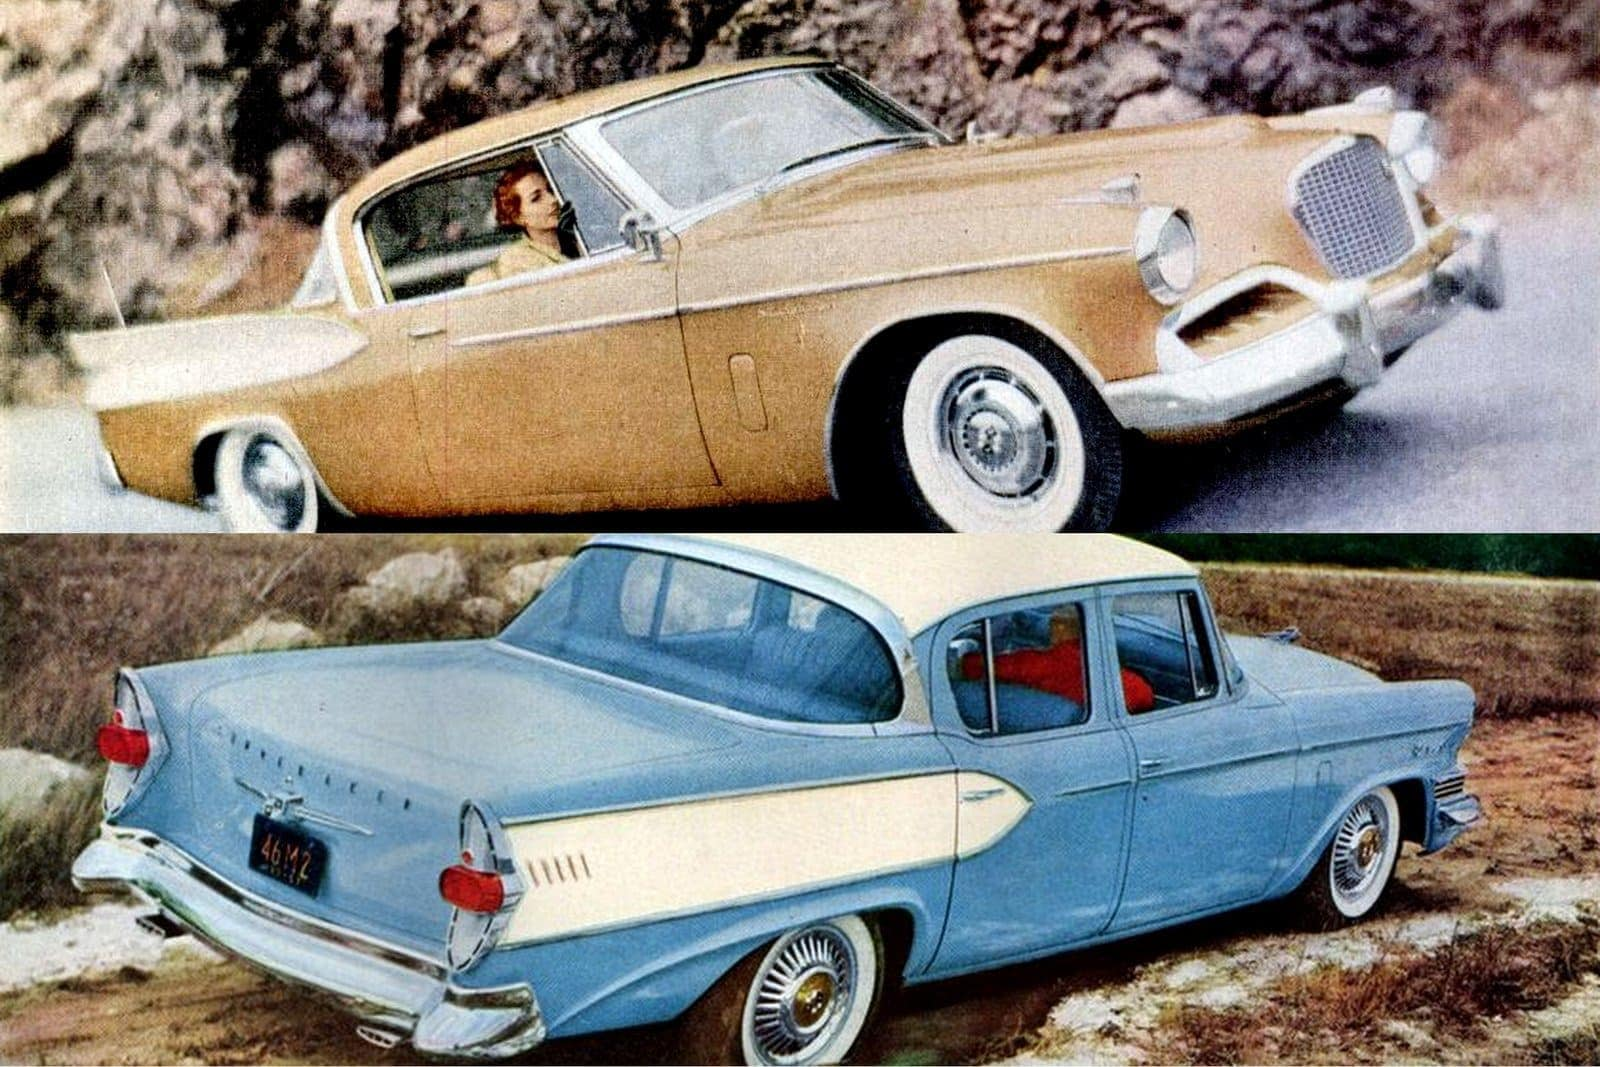 See classic 1950s Studebaker cars